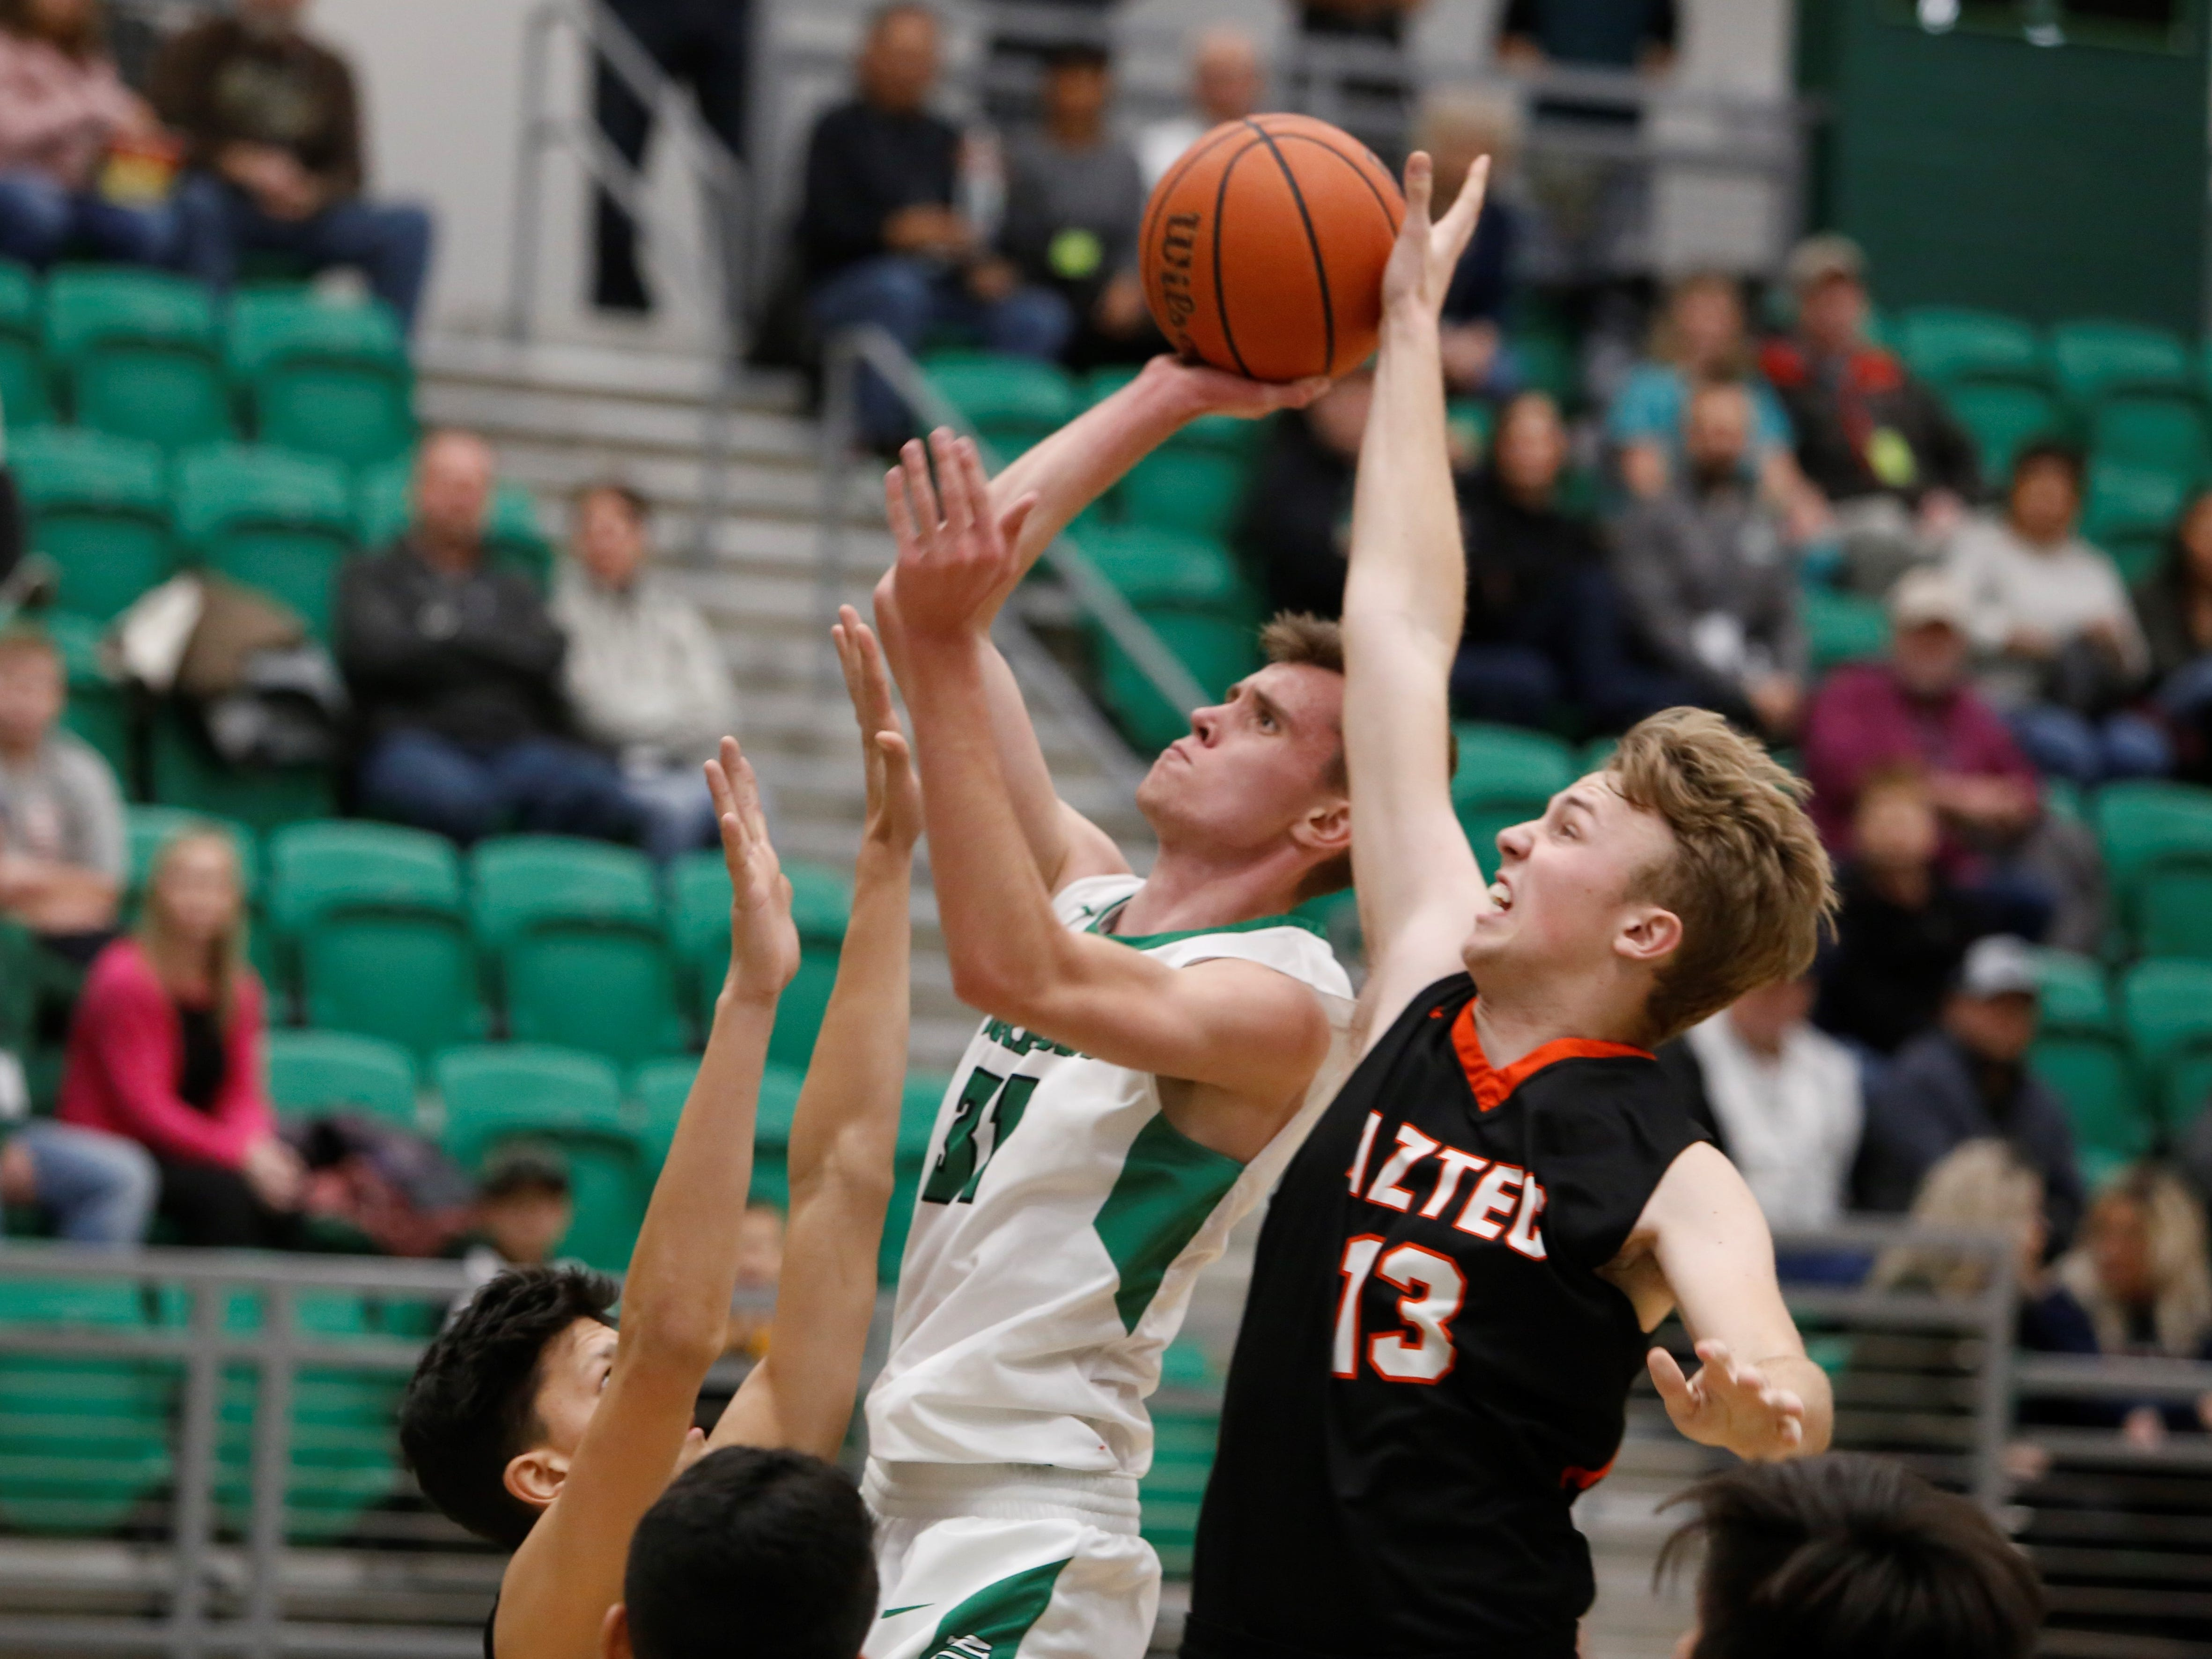 Aztec's Dom Faverino blocks a shot attempt by Farmington's Jacob Gillen during Thursday's Marv Sanders Invitational quarterfinals at Scorpion Arena in Farmington.